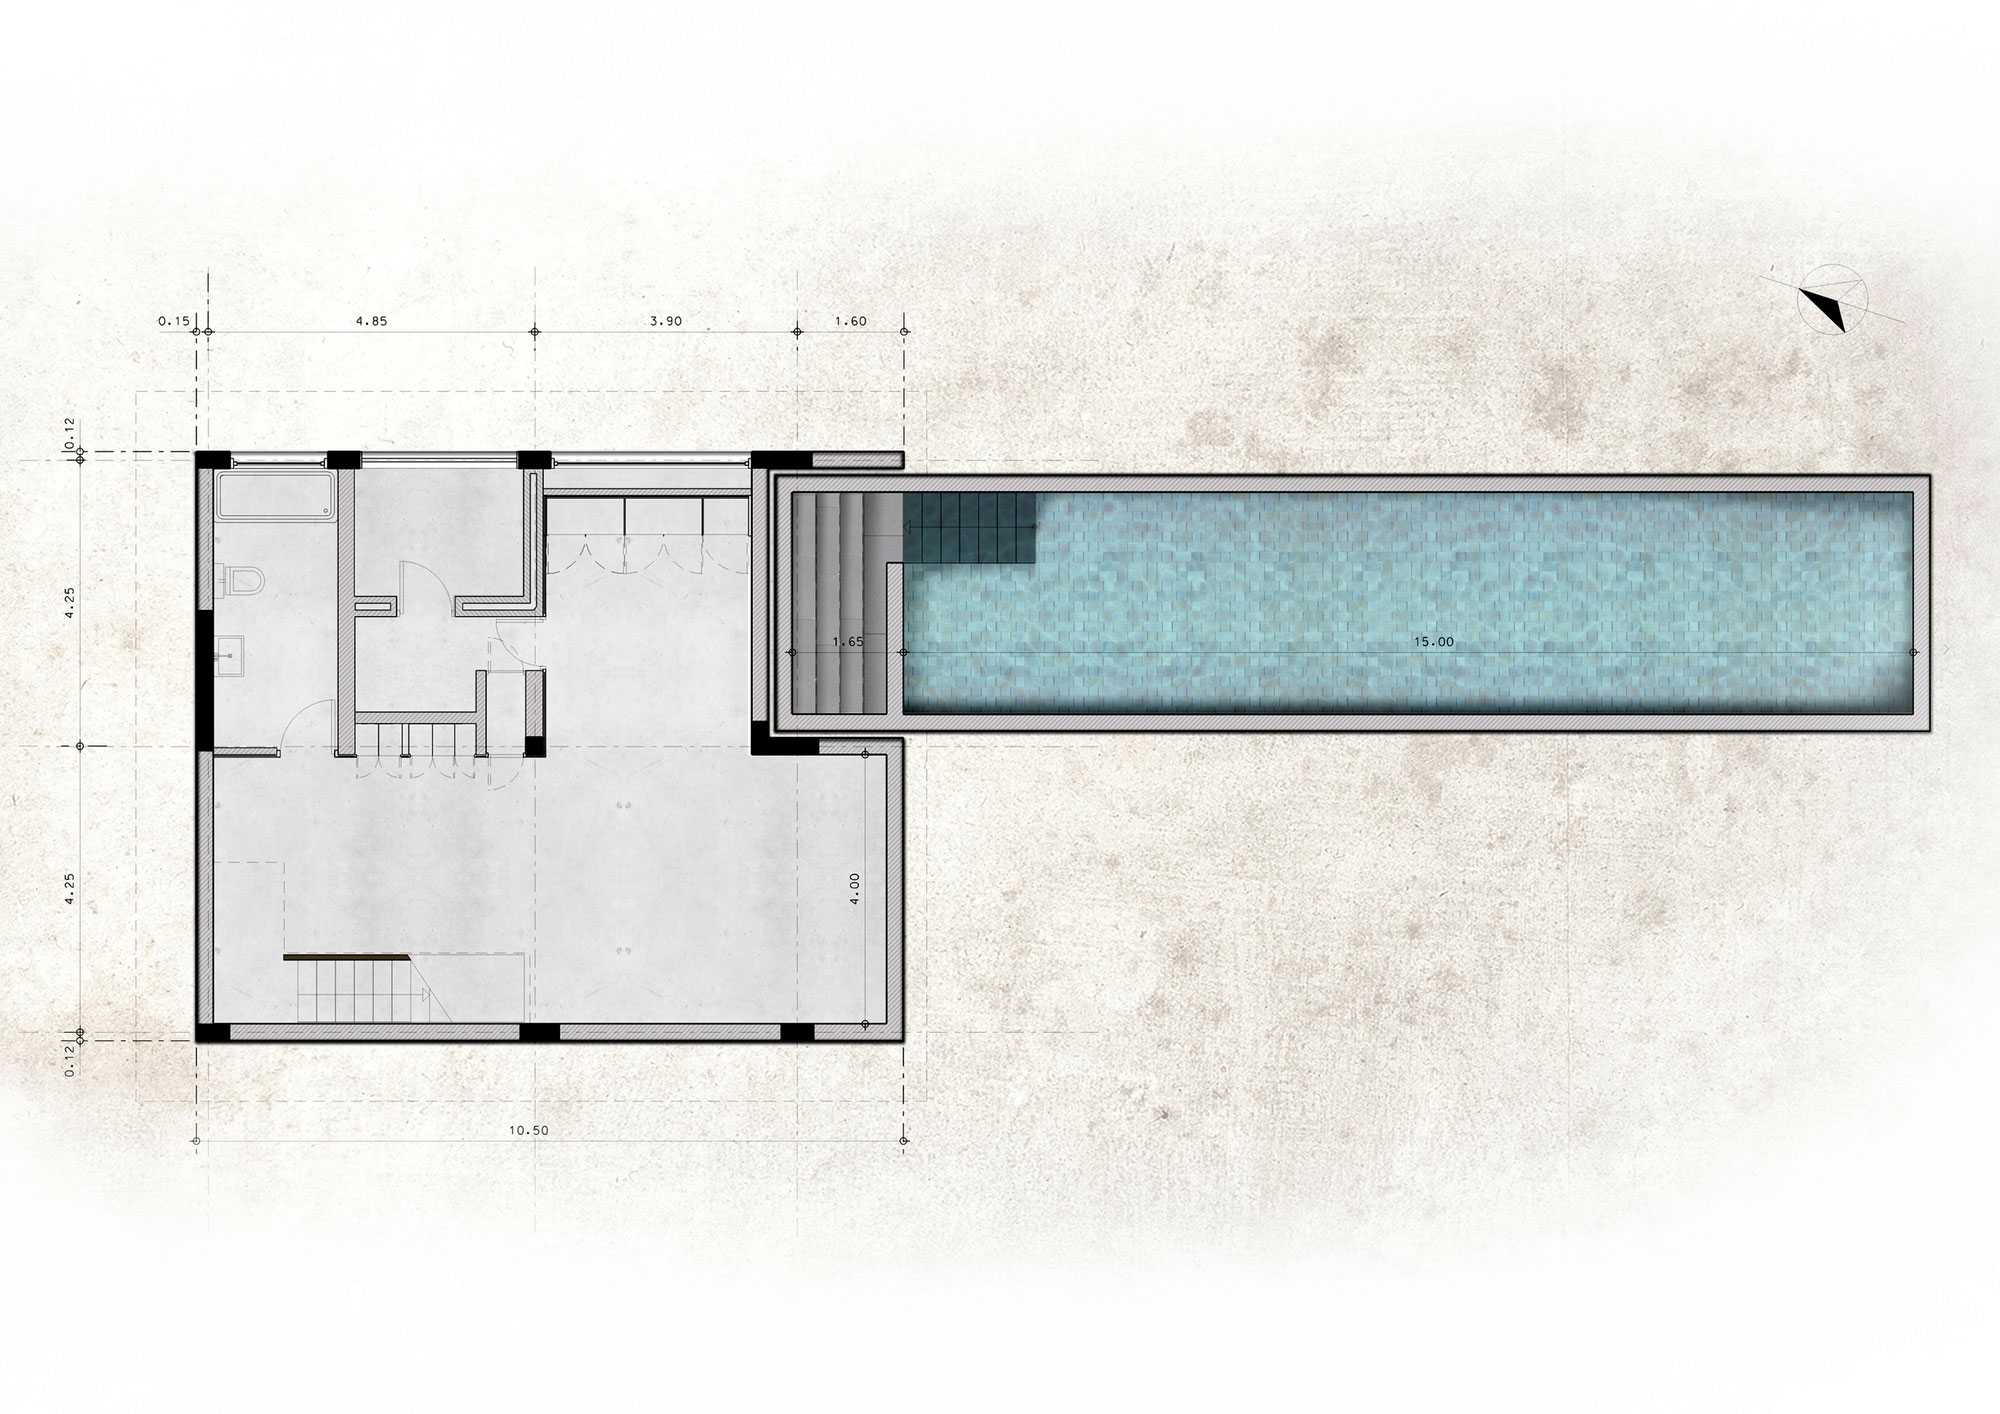 Pavilion at Architect's Residence in Nicosia by Kythreotis Architects-16